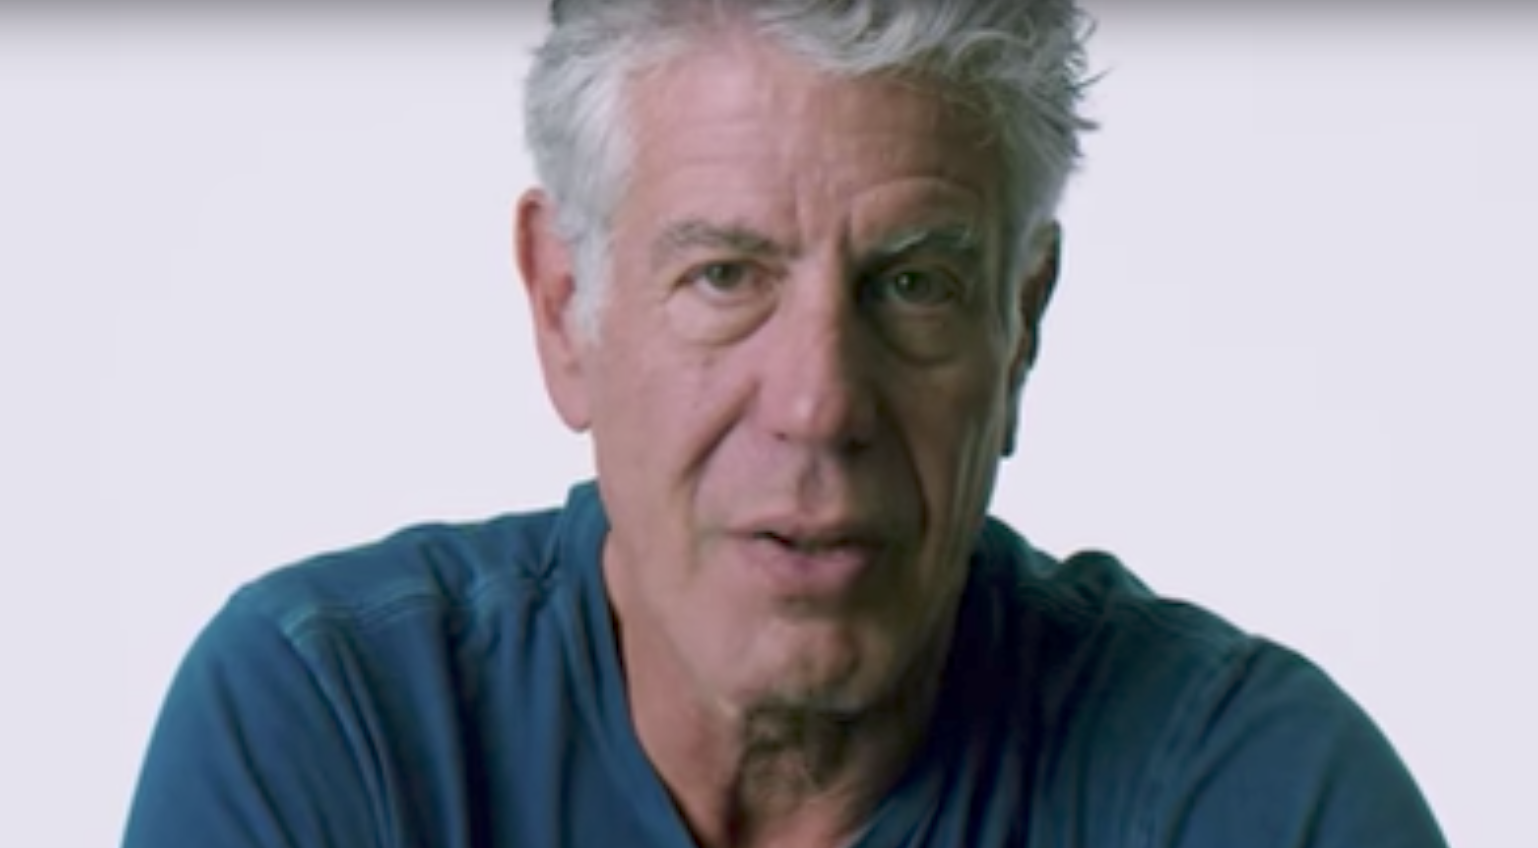 Let Anthony Bourdain Teach You How to Fight Food Waste